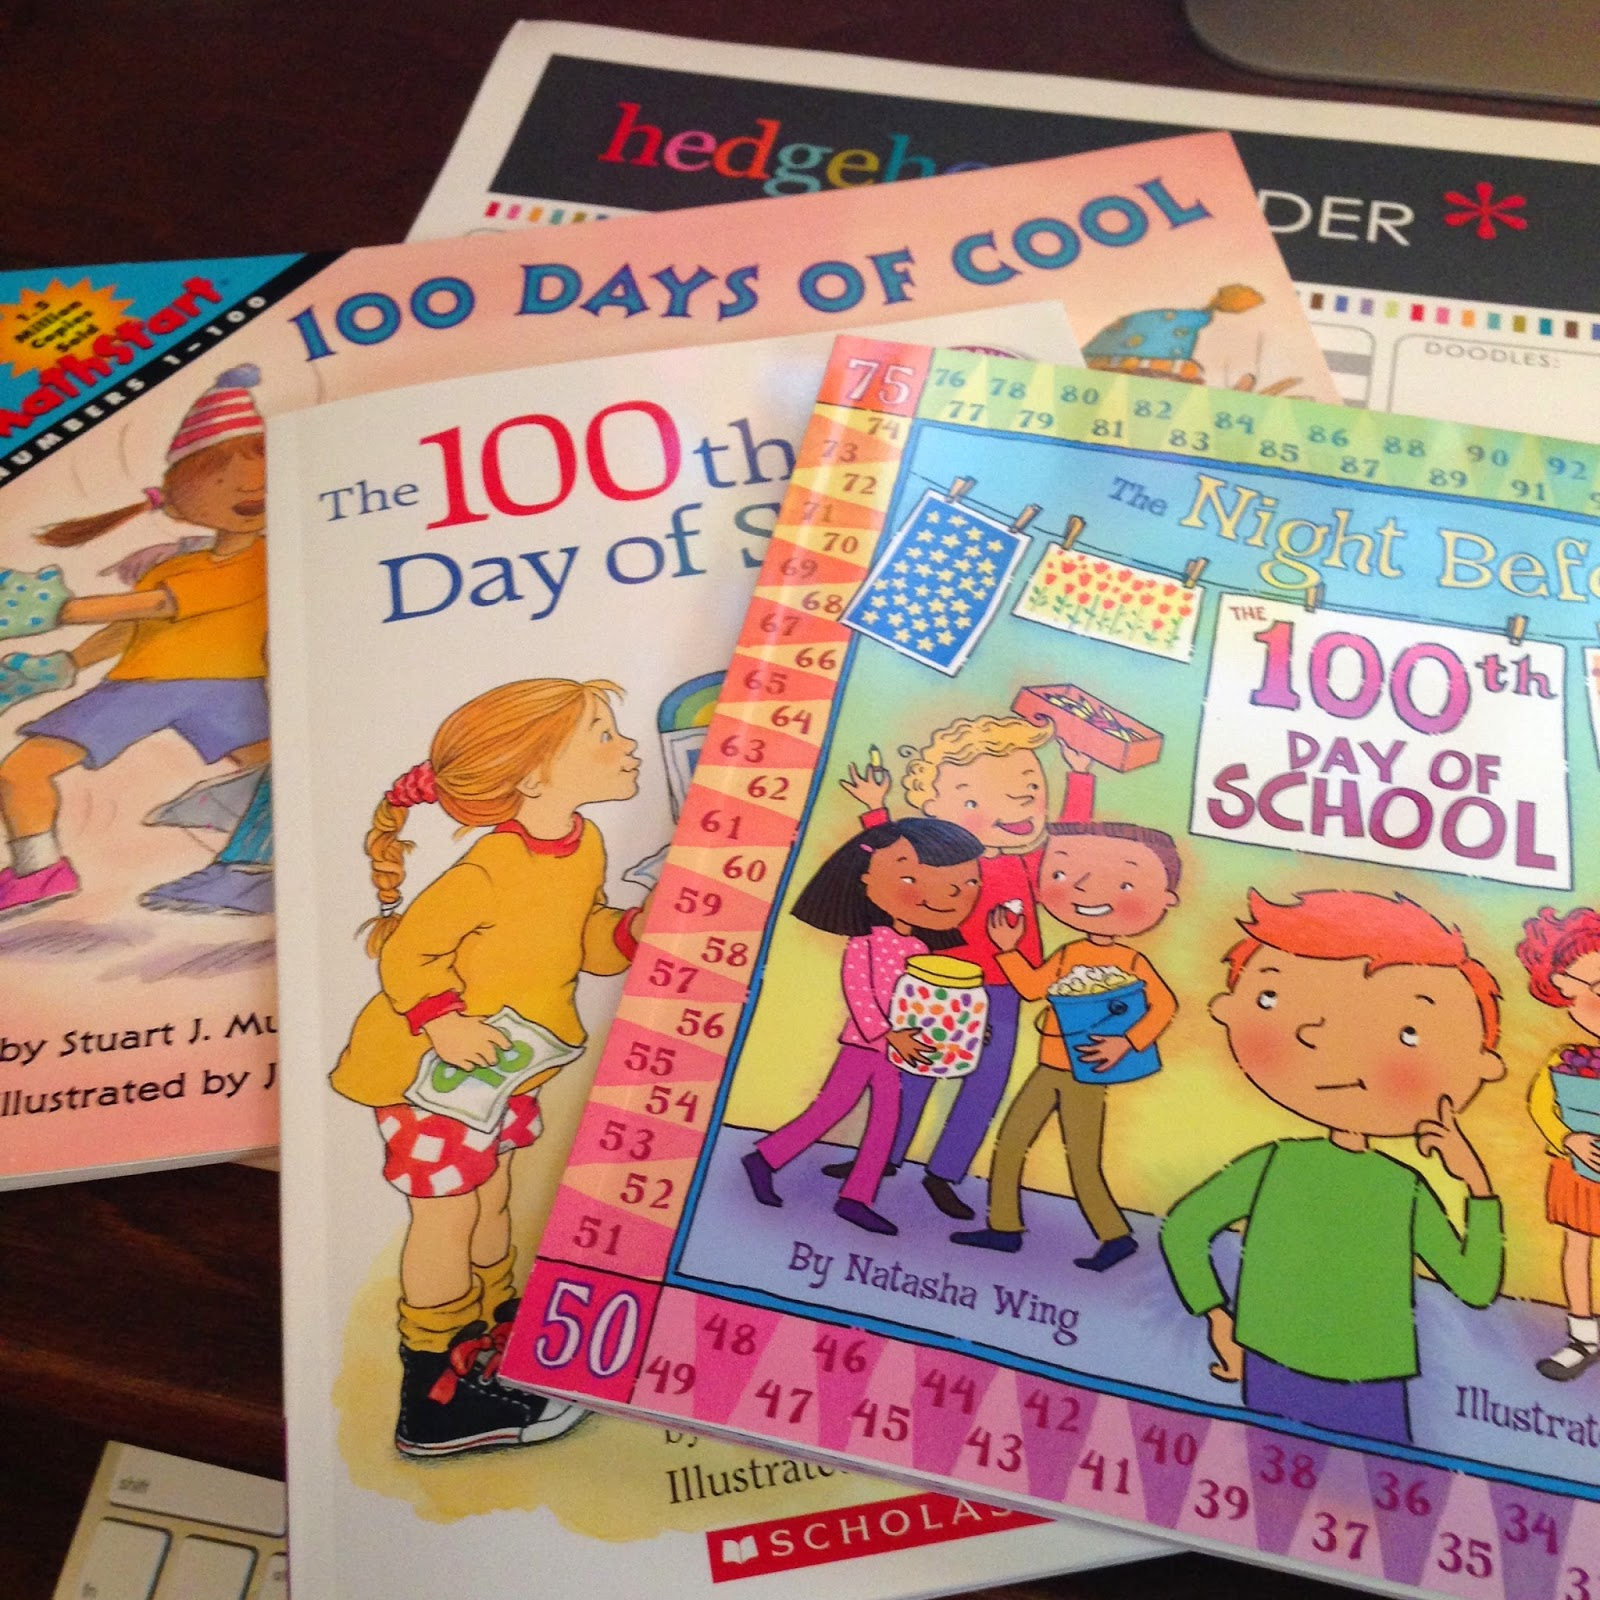 100th Day of School - picture books + activities + STEM + STEAM